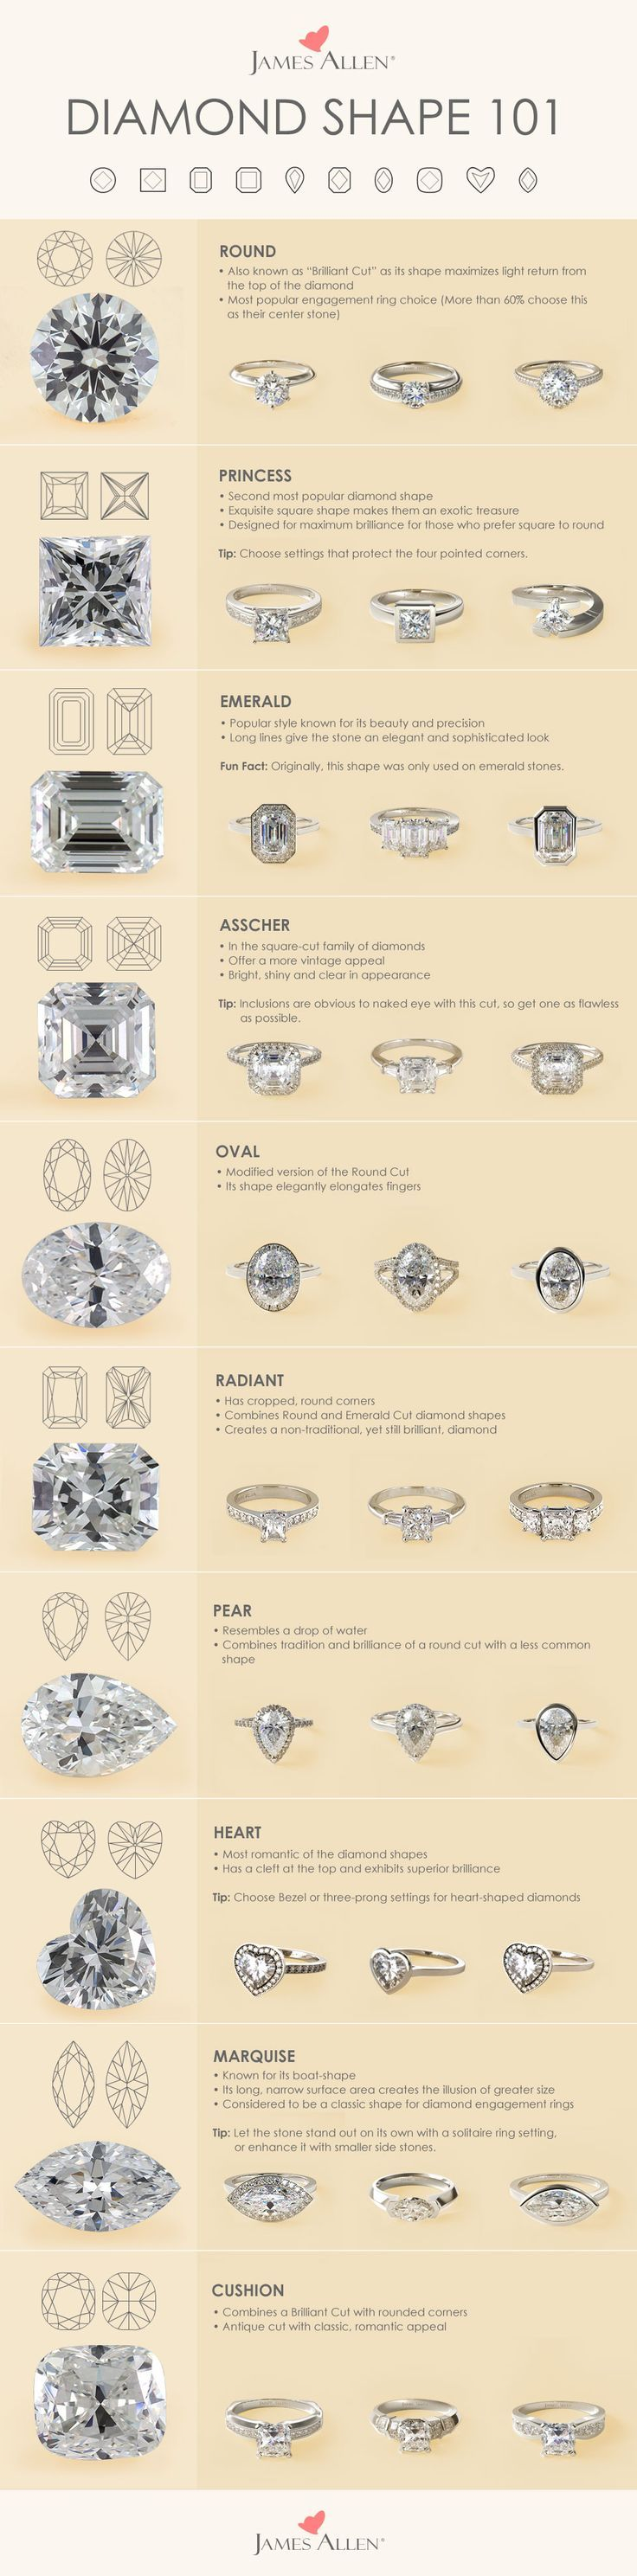 Best 25 Types of wedding rings ideas on Pinterest